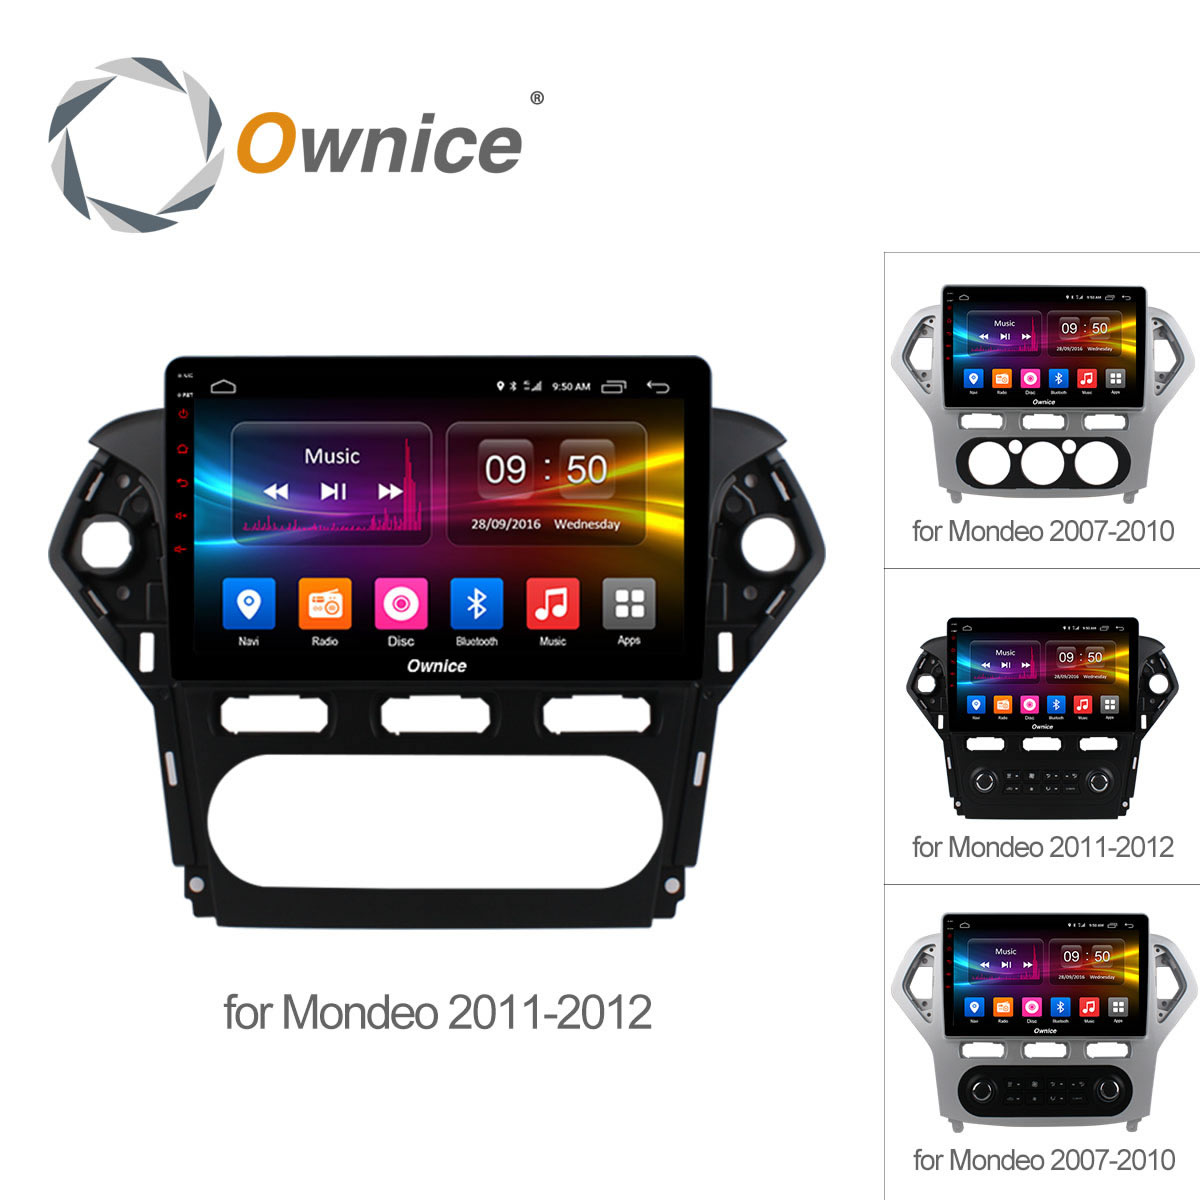 Ownice 10.1 Android 6.0 Octa Core 2.5D IPS voiture radio pour Ford Mondeo 2007-2012 GPS Audio dvd player Support 32G ROM 4G LTE DVR